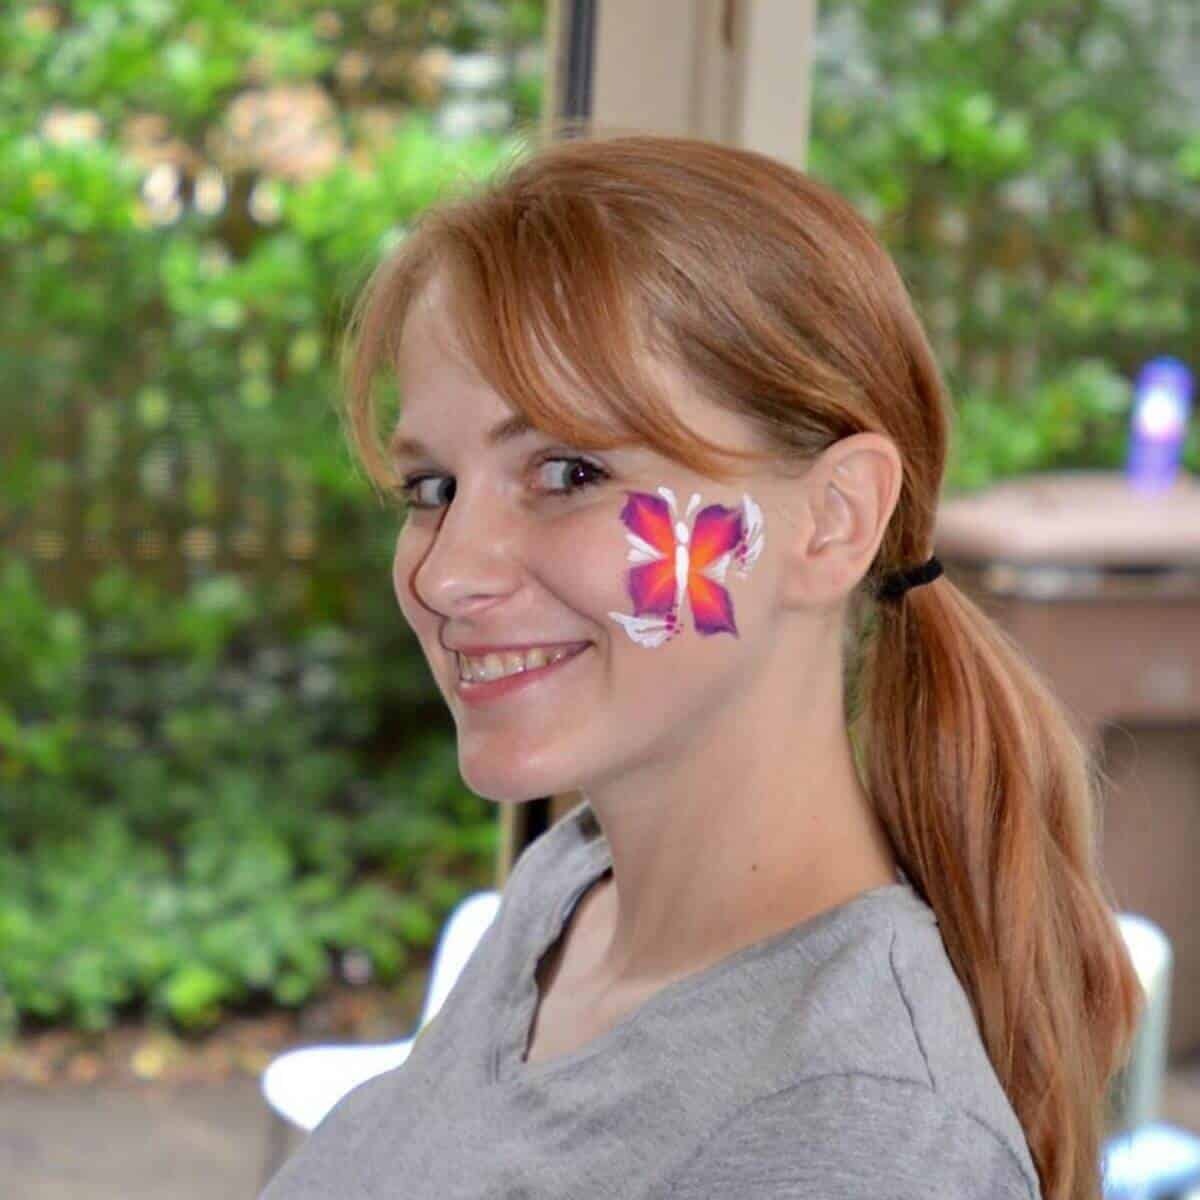 woman-smiling-at-camera-with-butterfly-on-her-face